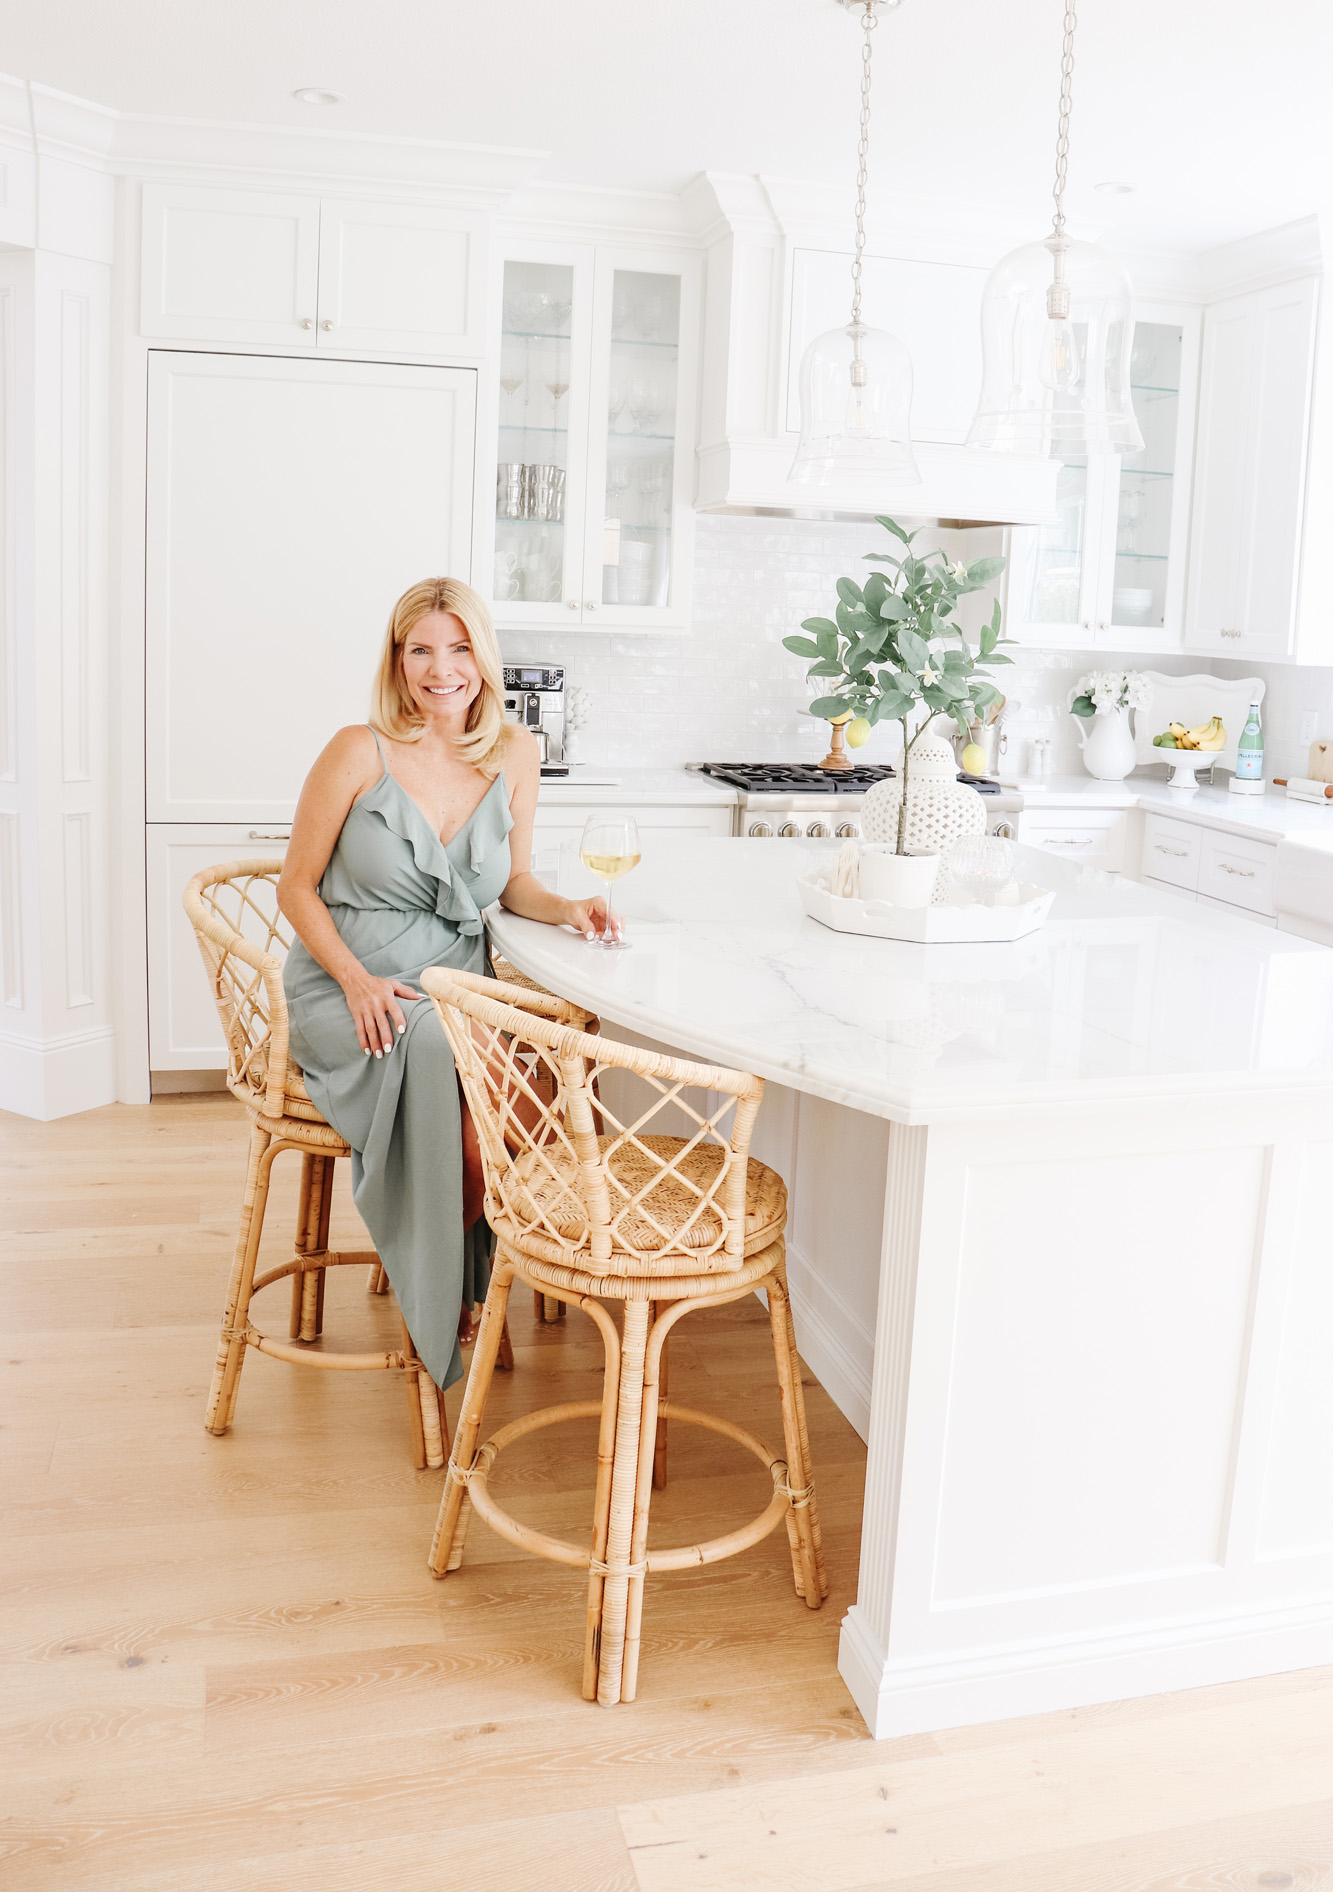 Bringing Texture to the Kitchen with Rattan Stools - Obsessed with my new woven stools! I sourced all of my favorite rattan and woven decor pieces too.  | Kristy Wicks